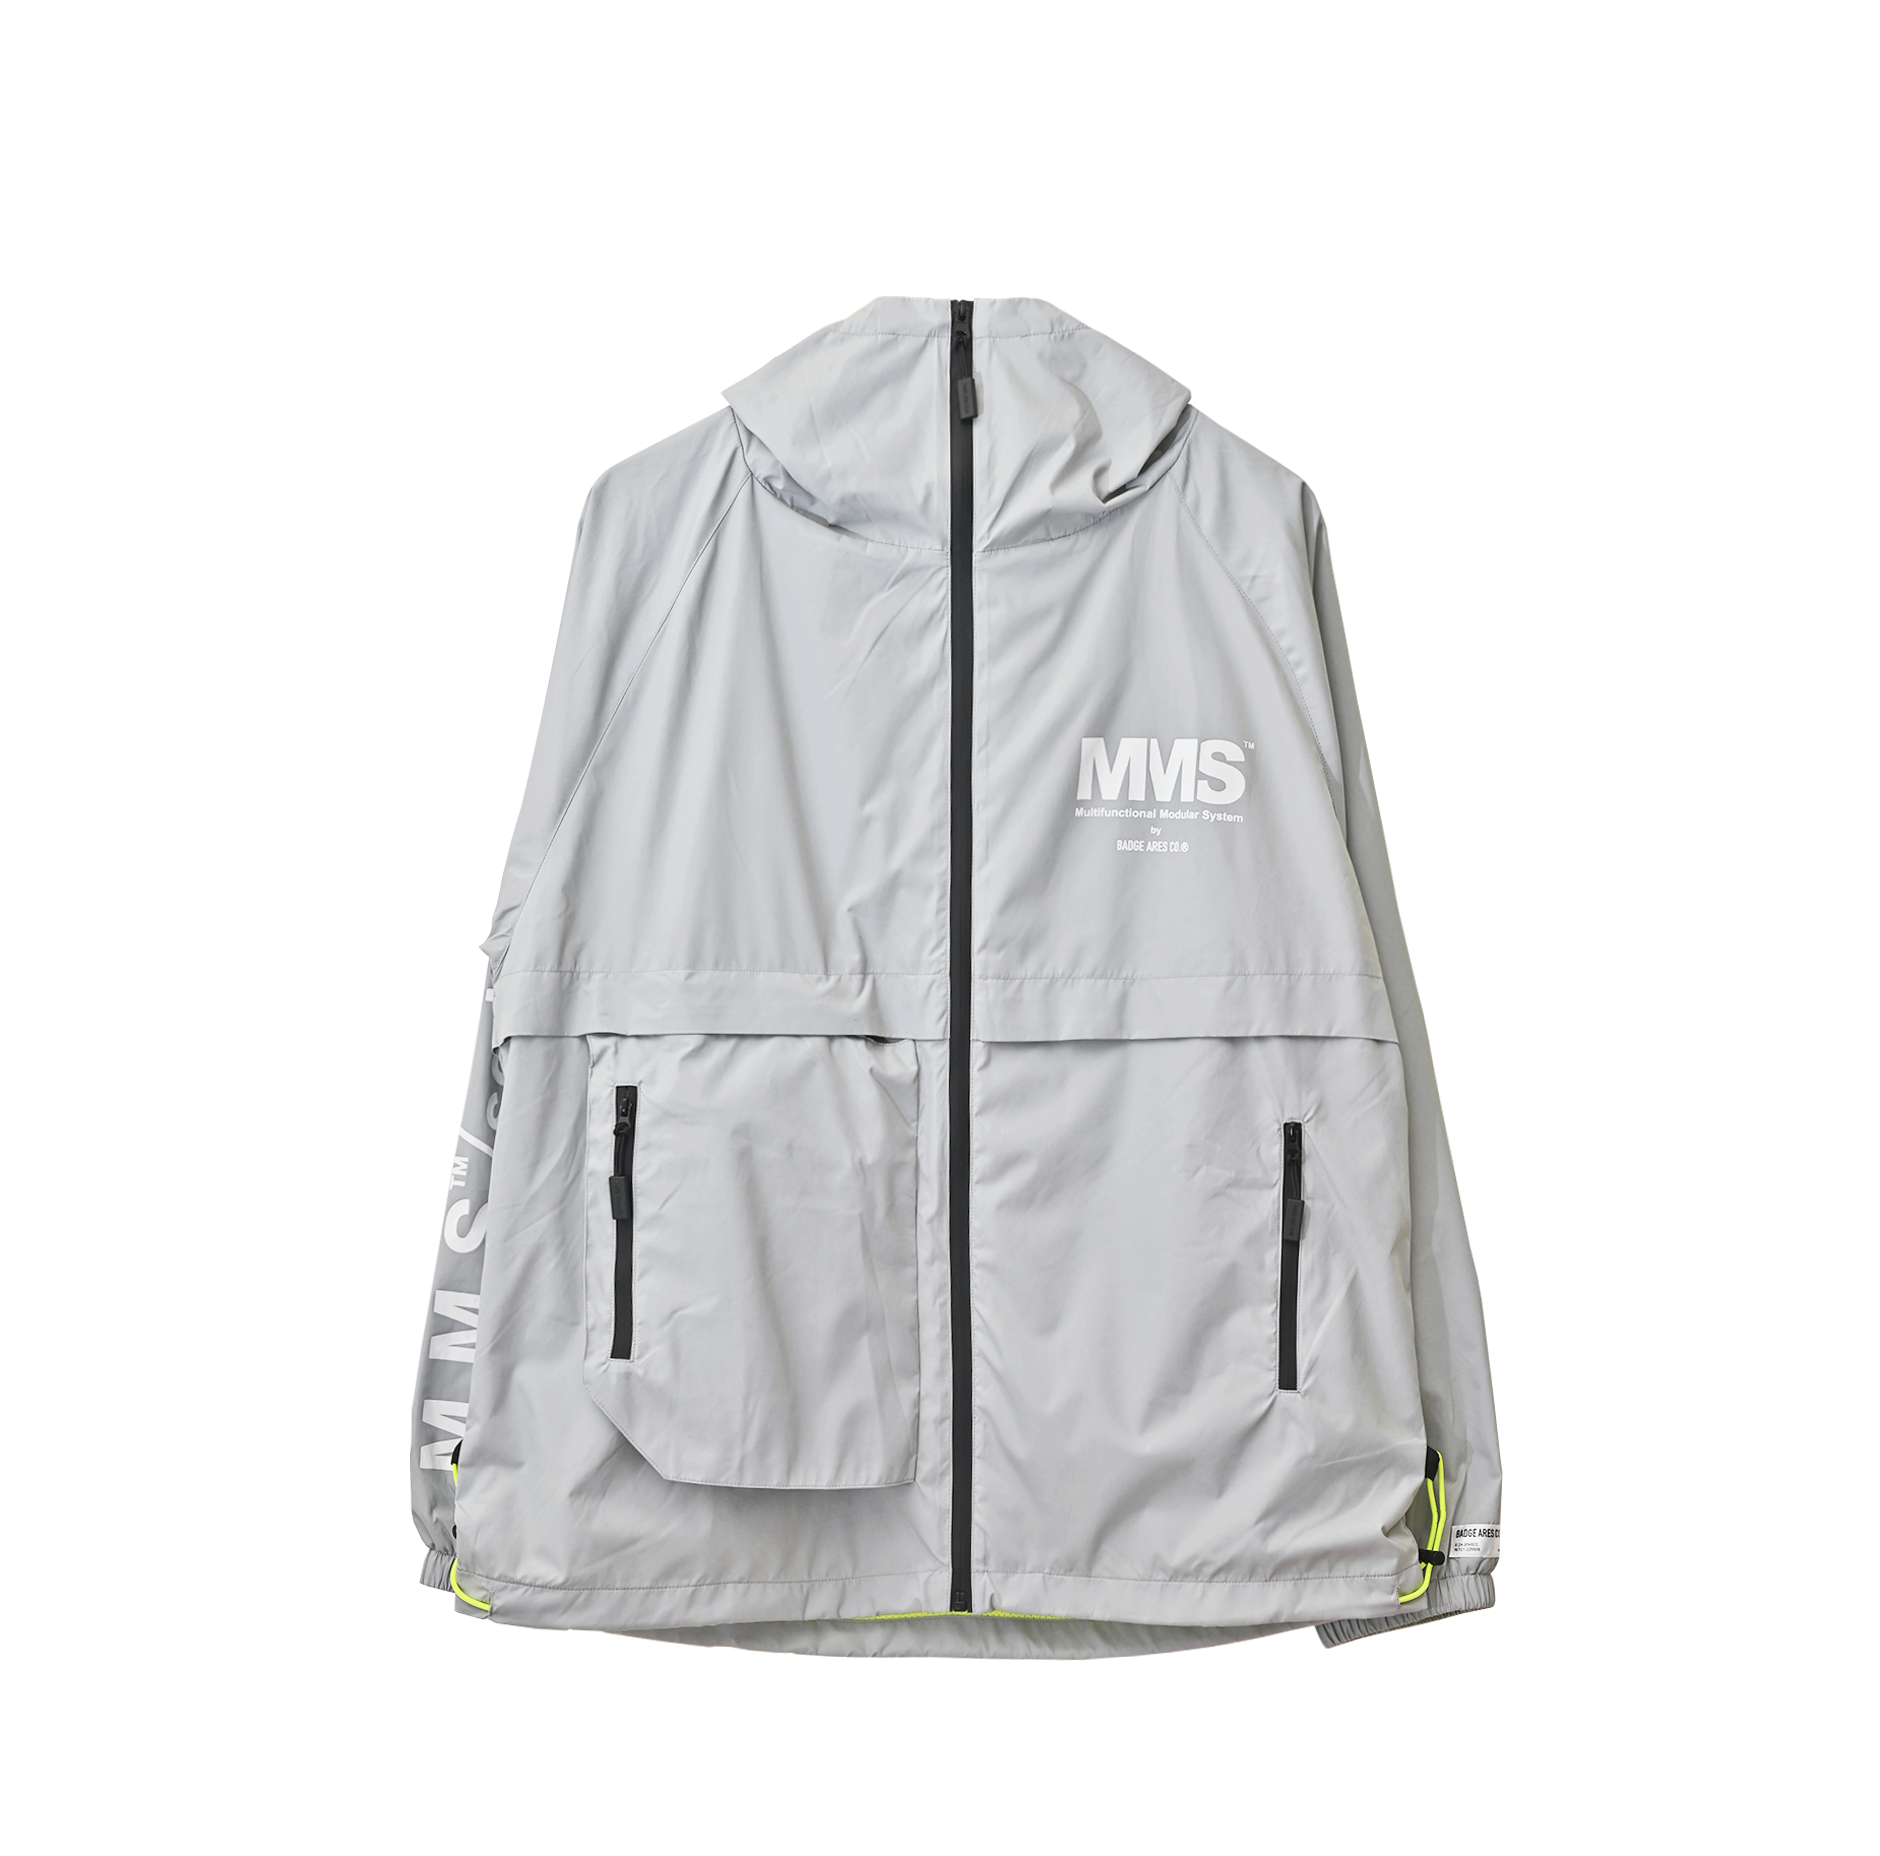 MMS_SPORTJACKET_灰01.png